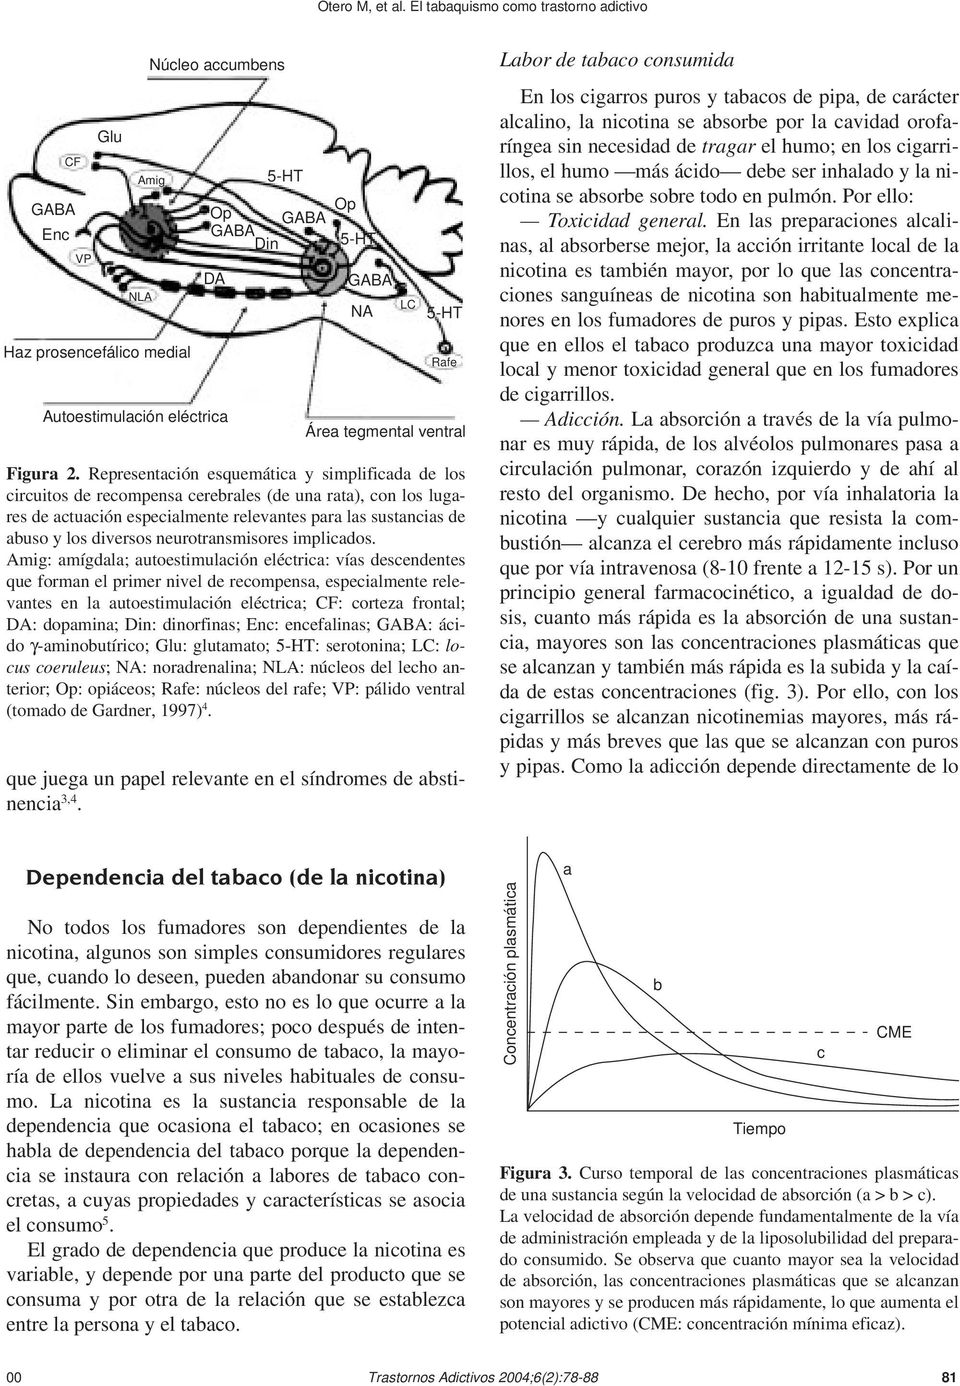 neurotransmisores implicados.